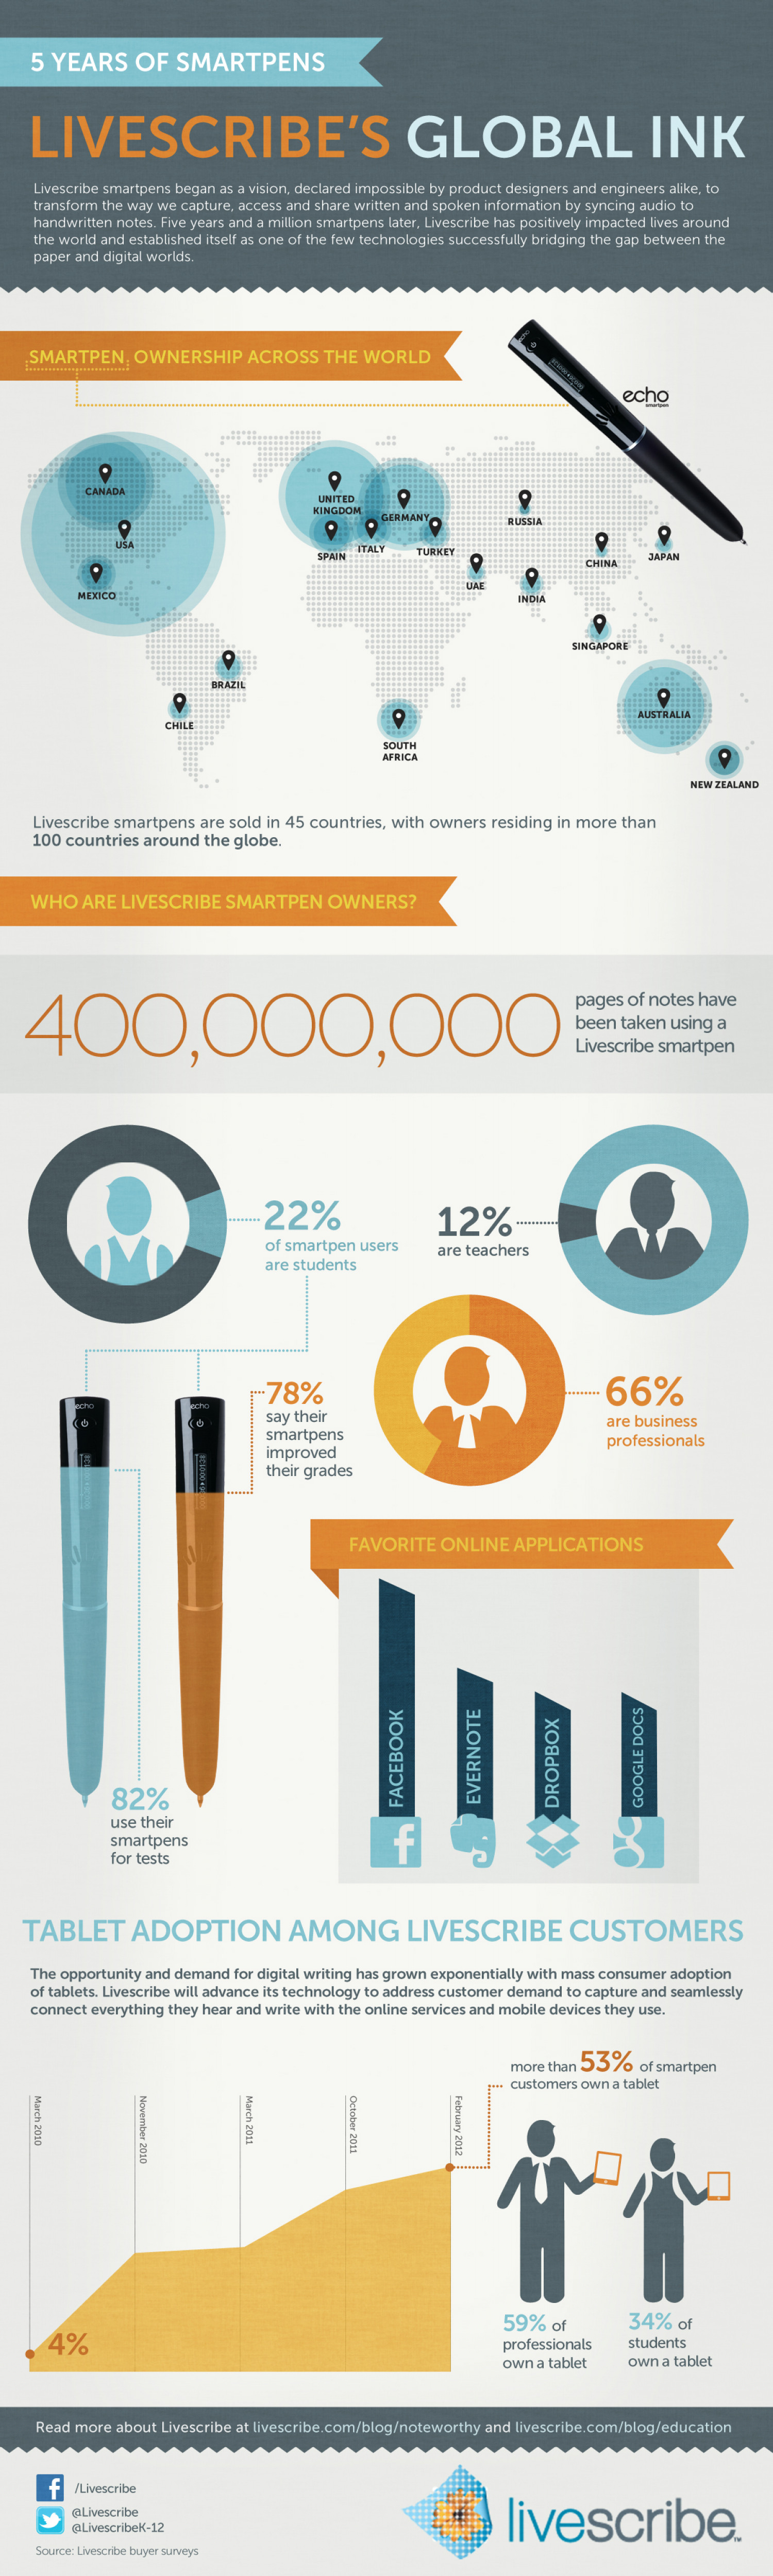 Five Years of Smartpens: Livescribe's Global Ink Infographic